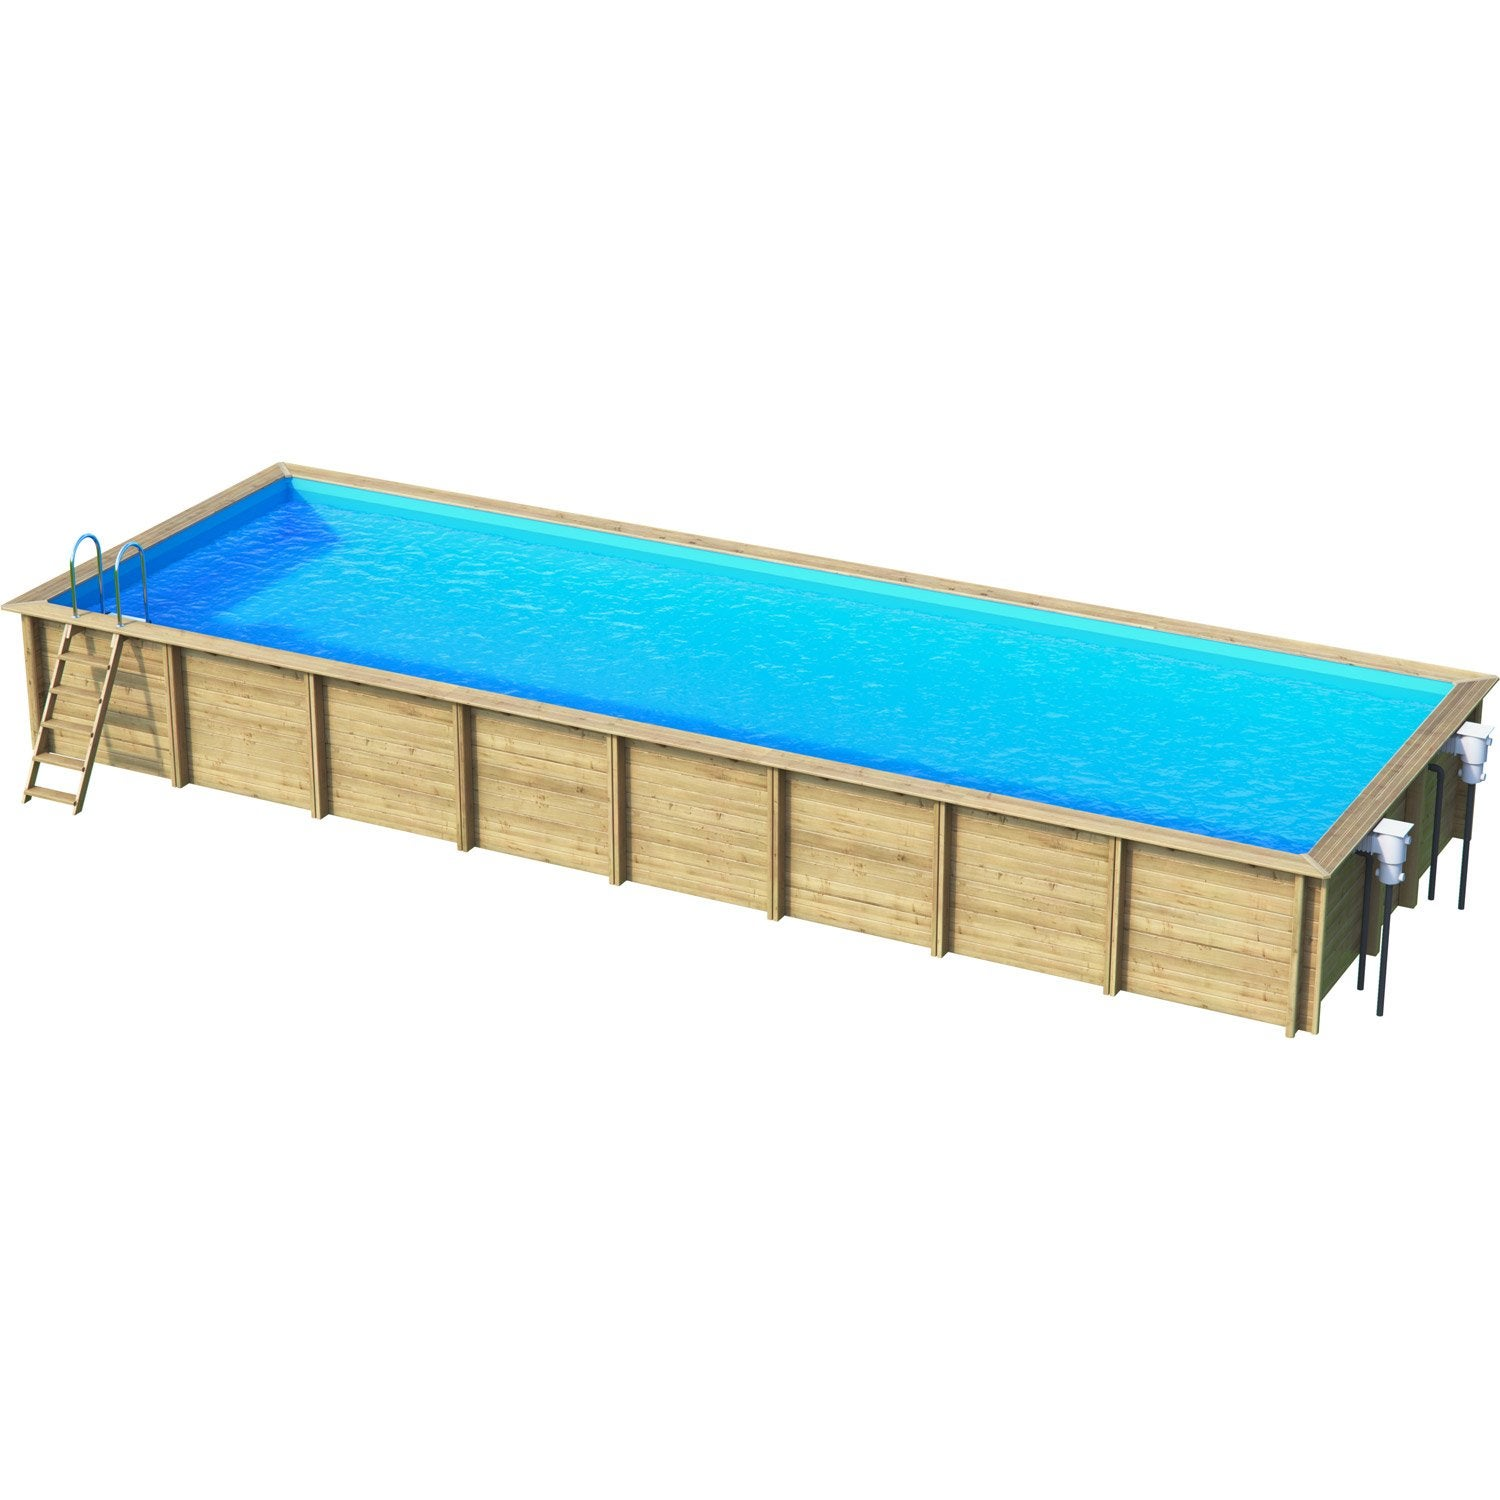 Piscine hors sol tubulaire rectangulaire leroy merlin for Leroy merlin piscine